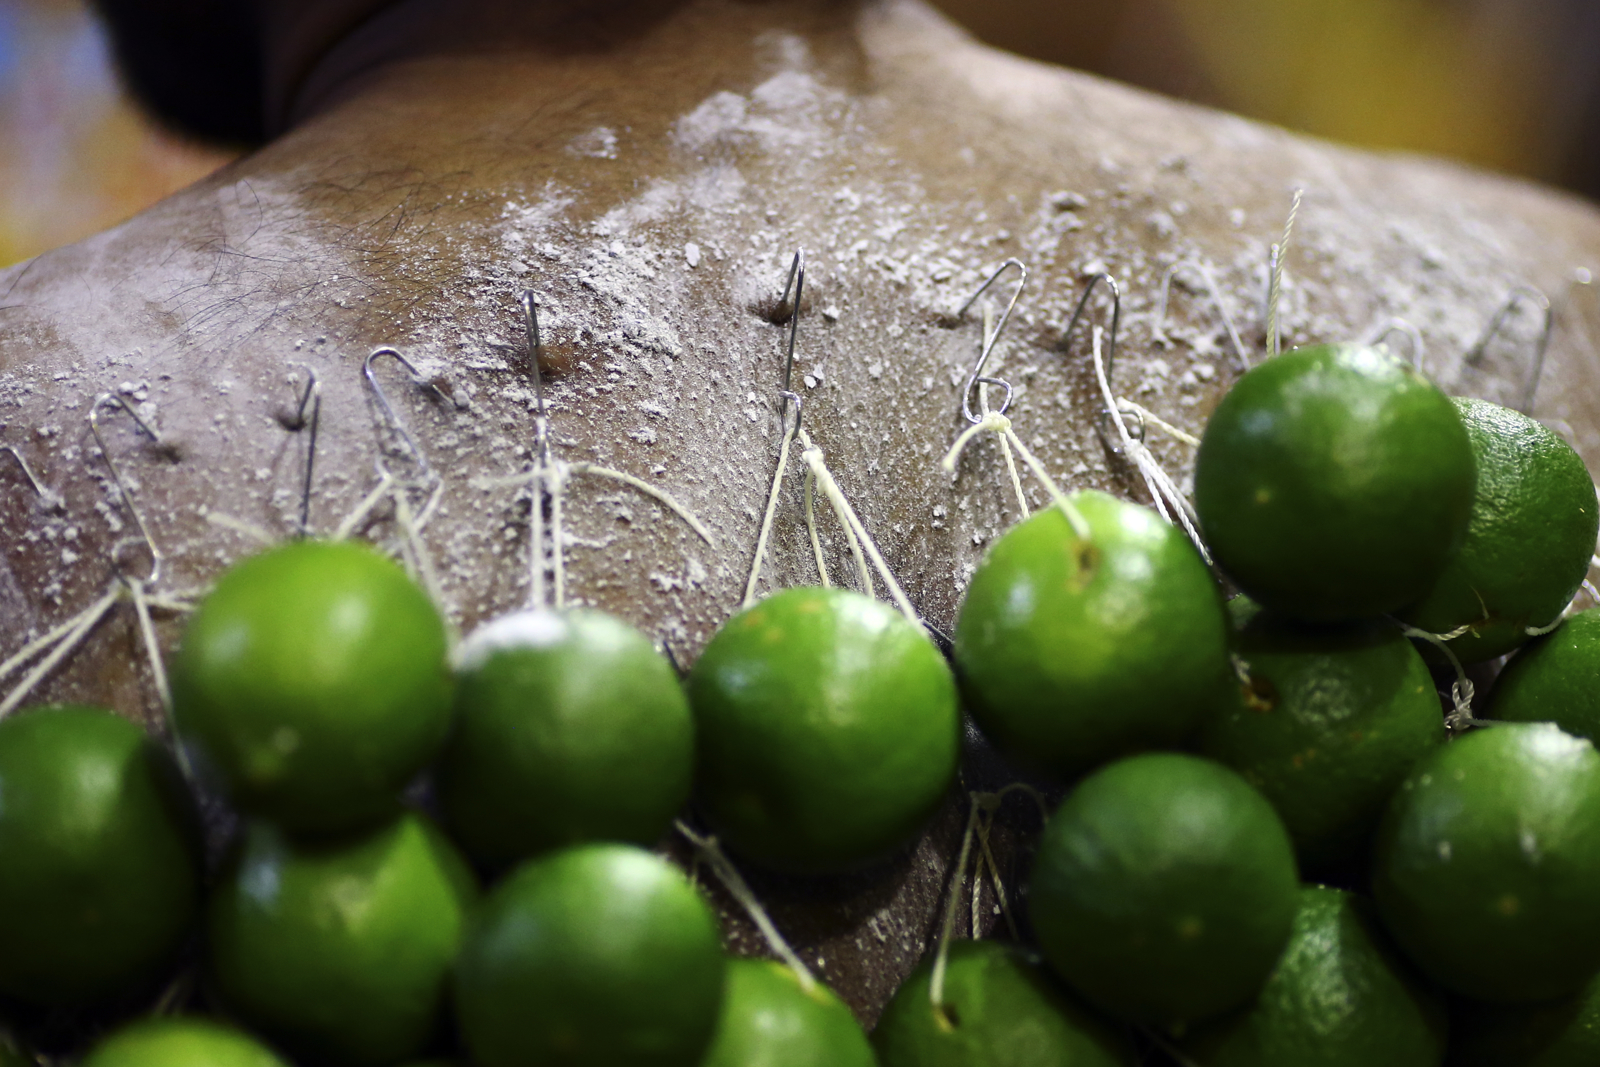 A devotee carries lime piercings on his back during the Thaipusam festival at the Sri Srinivasa Perumal Temple on February 9, 2017 in Singapore.